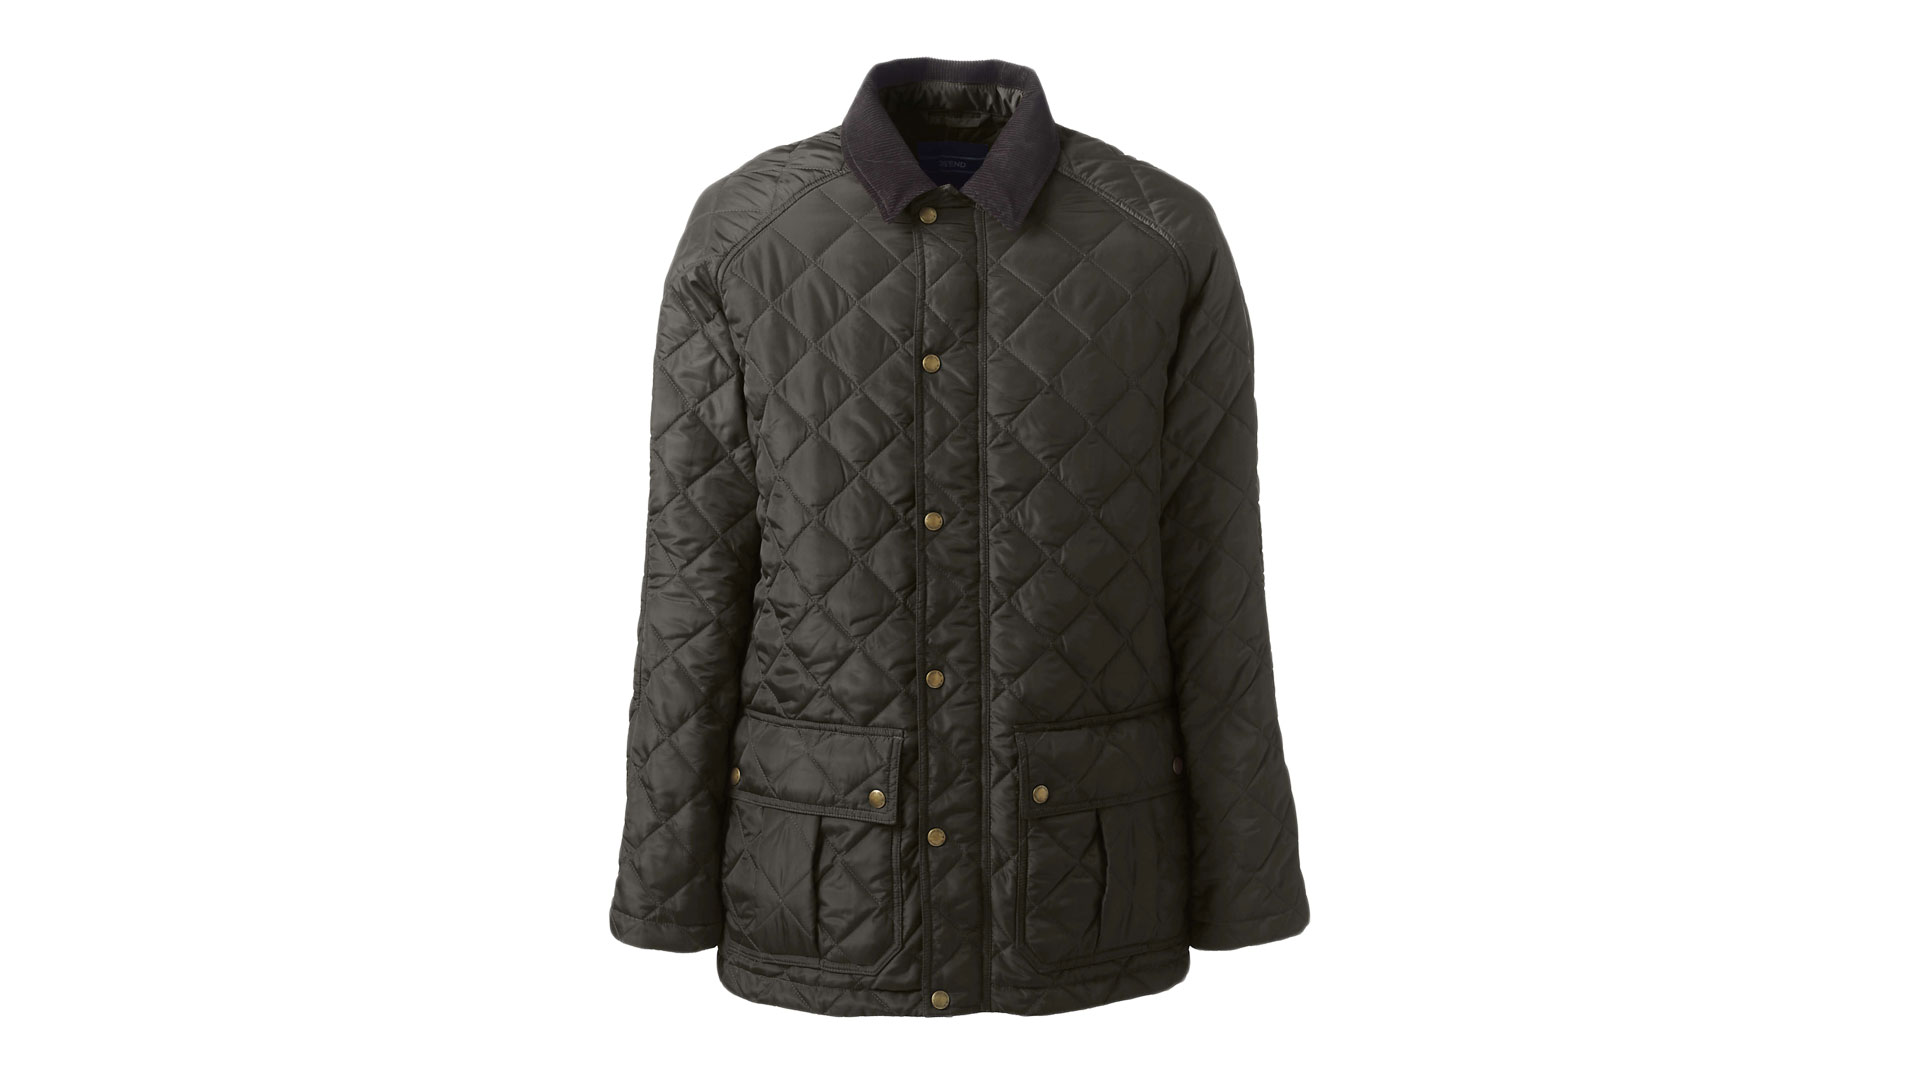 warm winter coat olive green quilted jacket